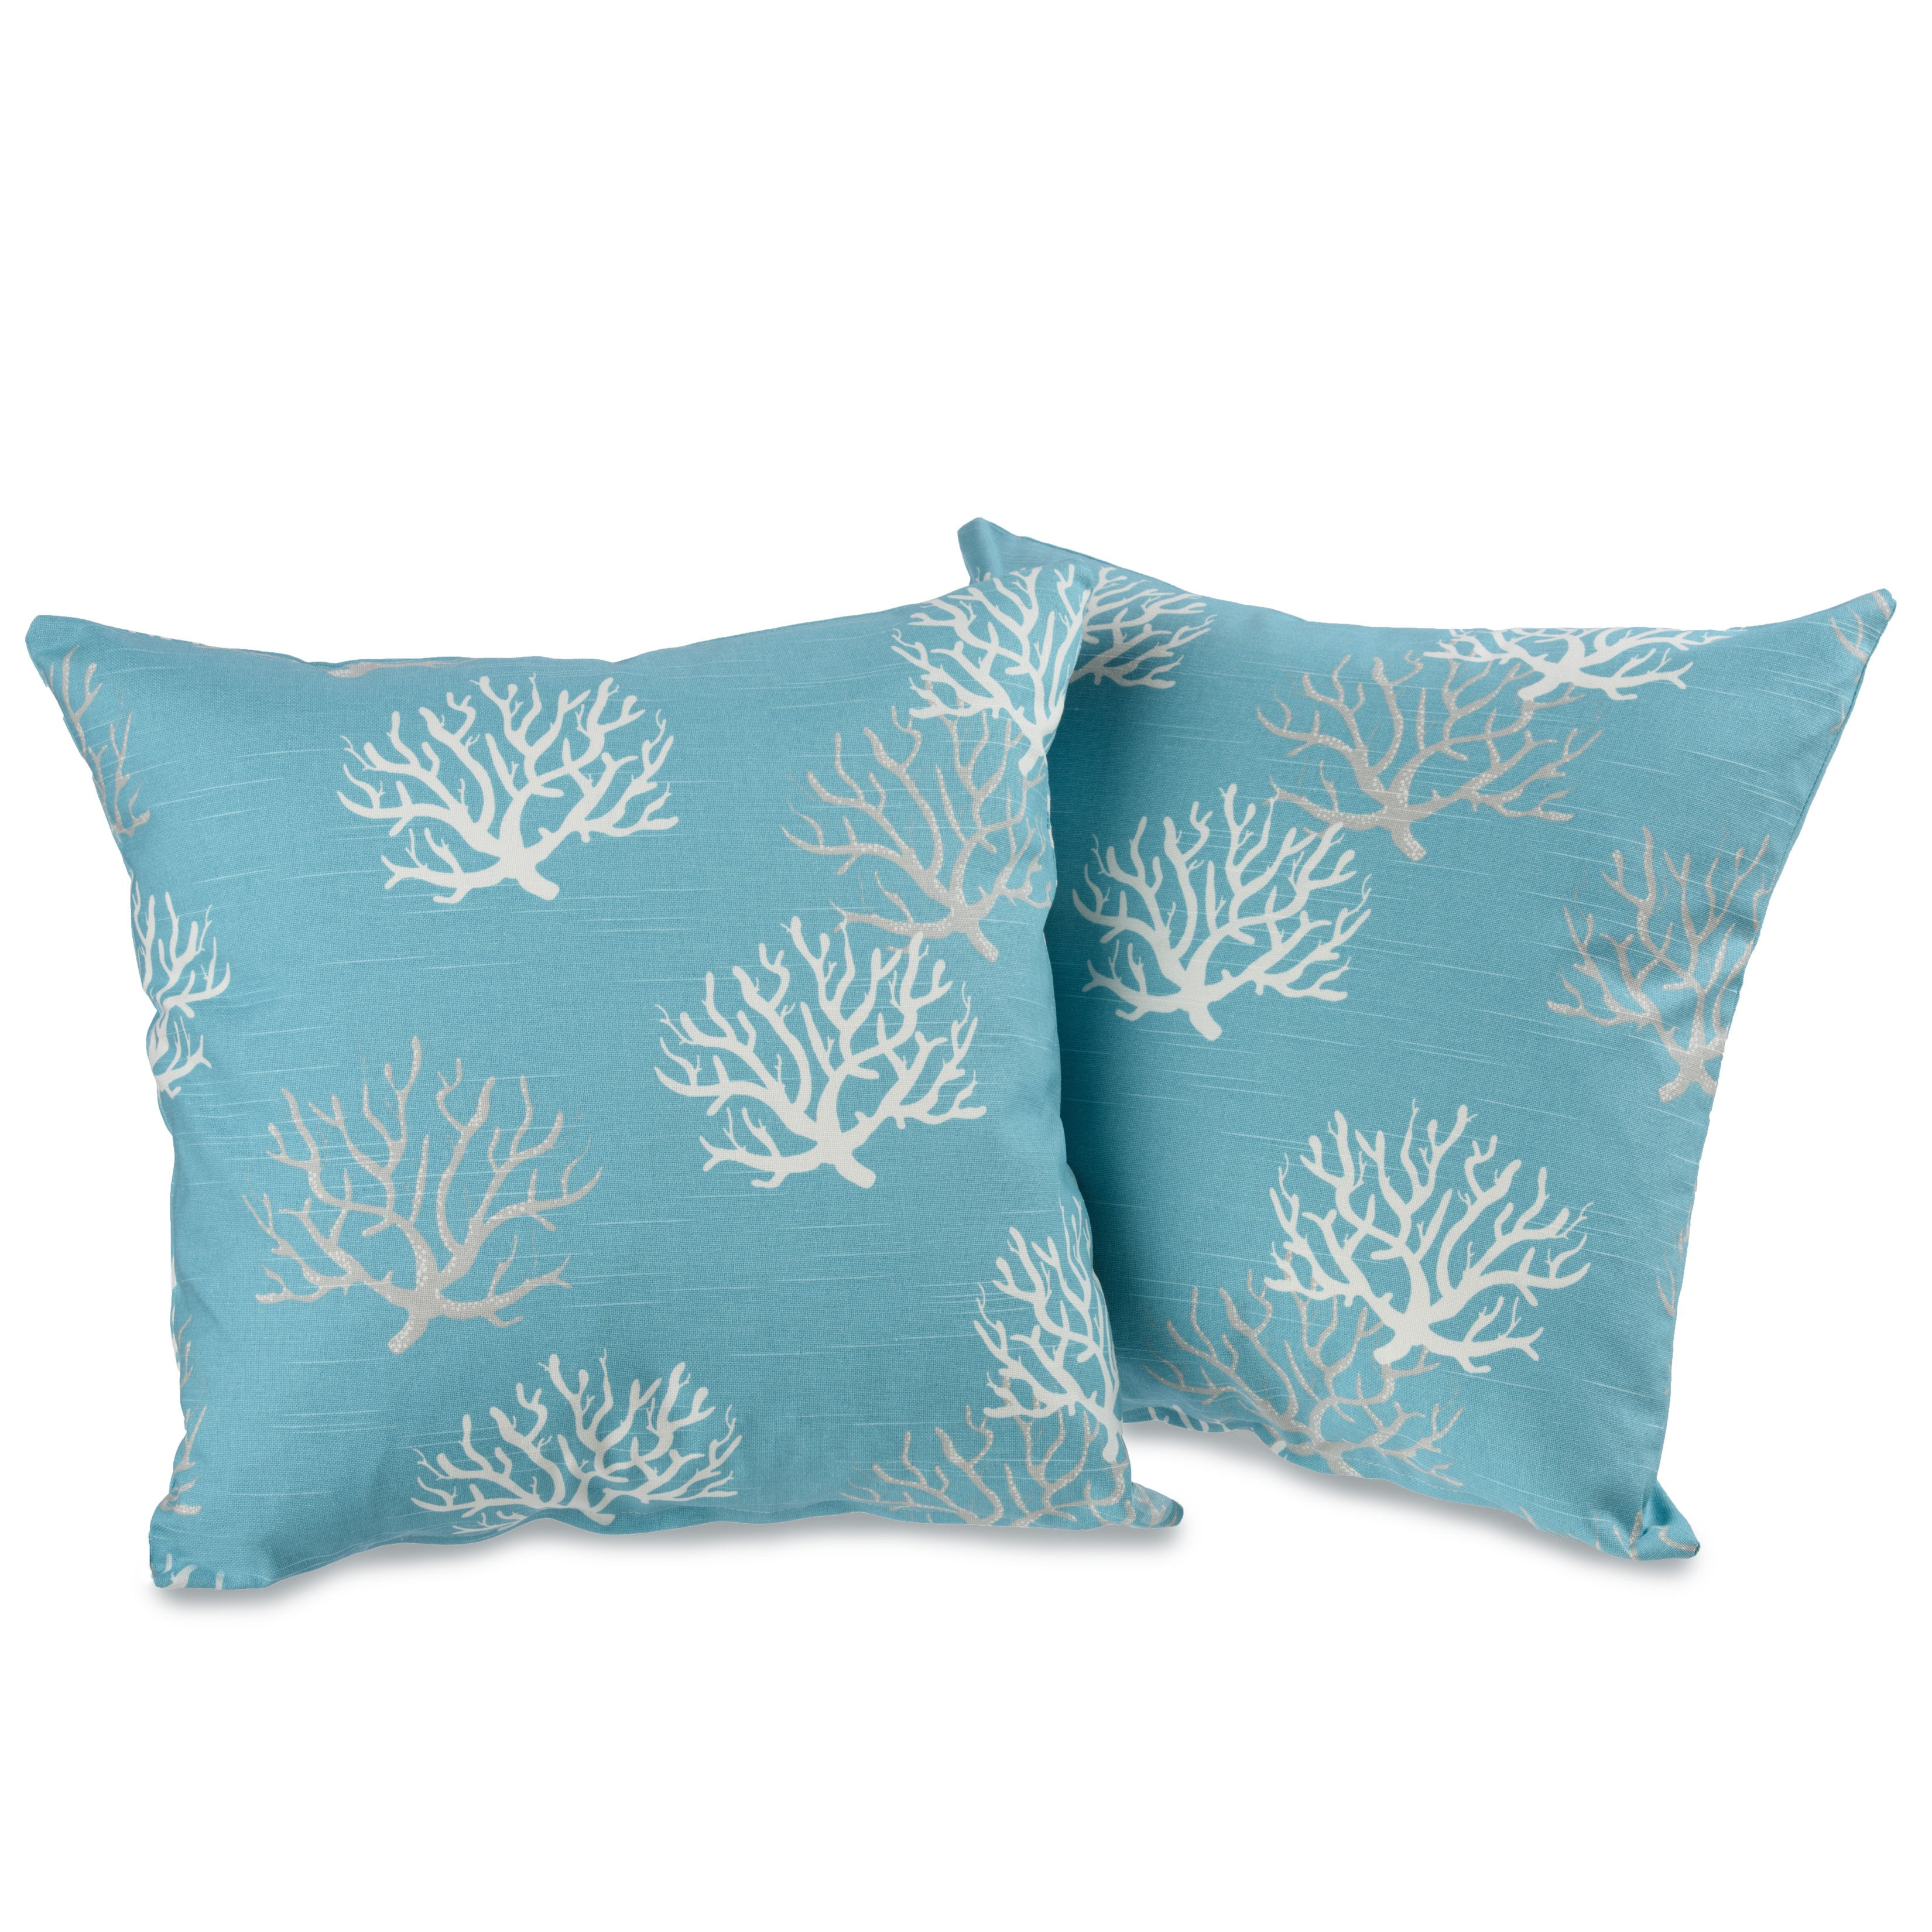 Shop captiva 20 inch decorative throw pillows set of 2 free shipping today overstock com 9821318